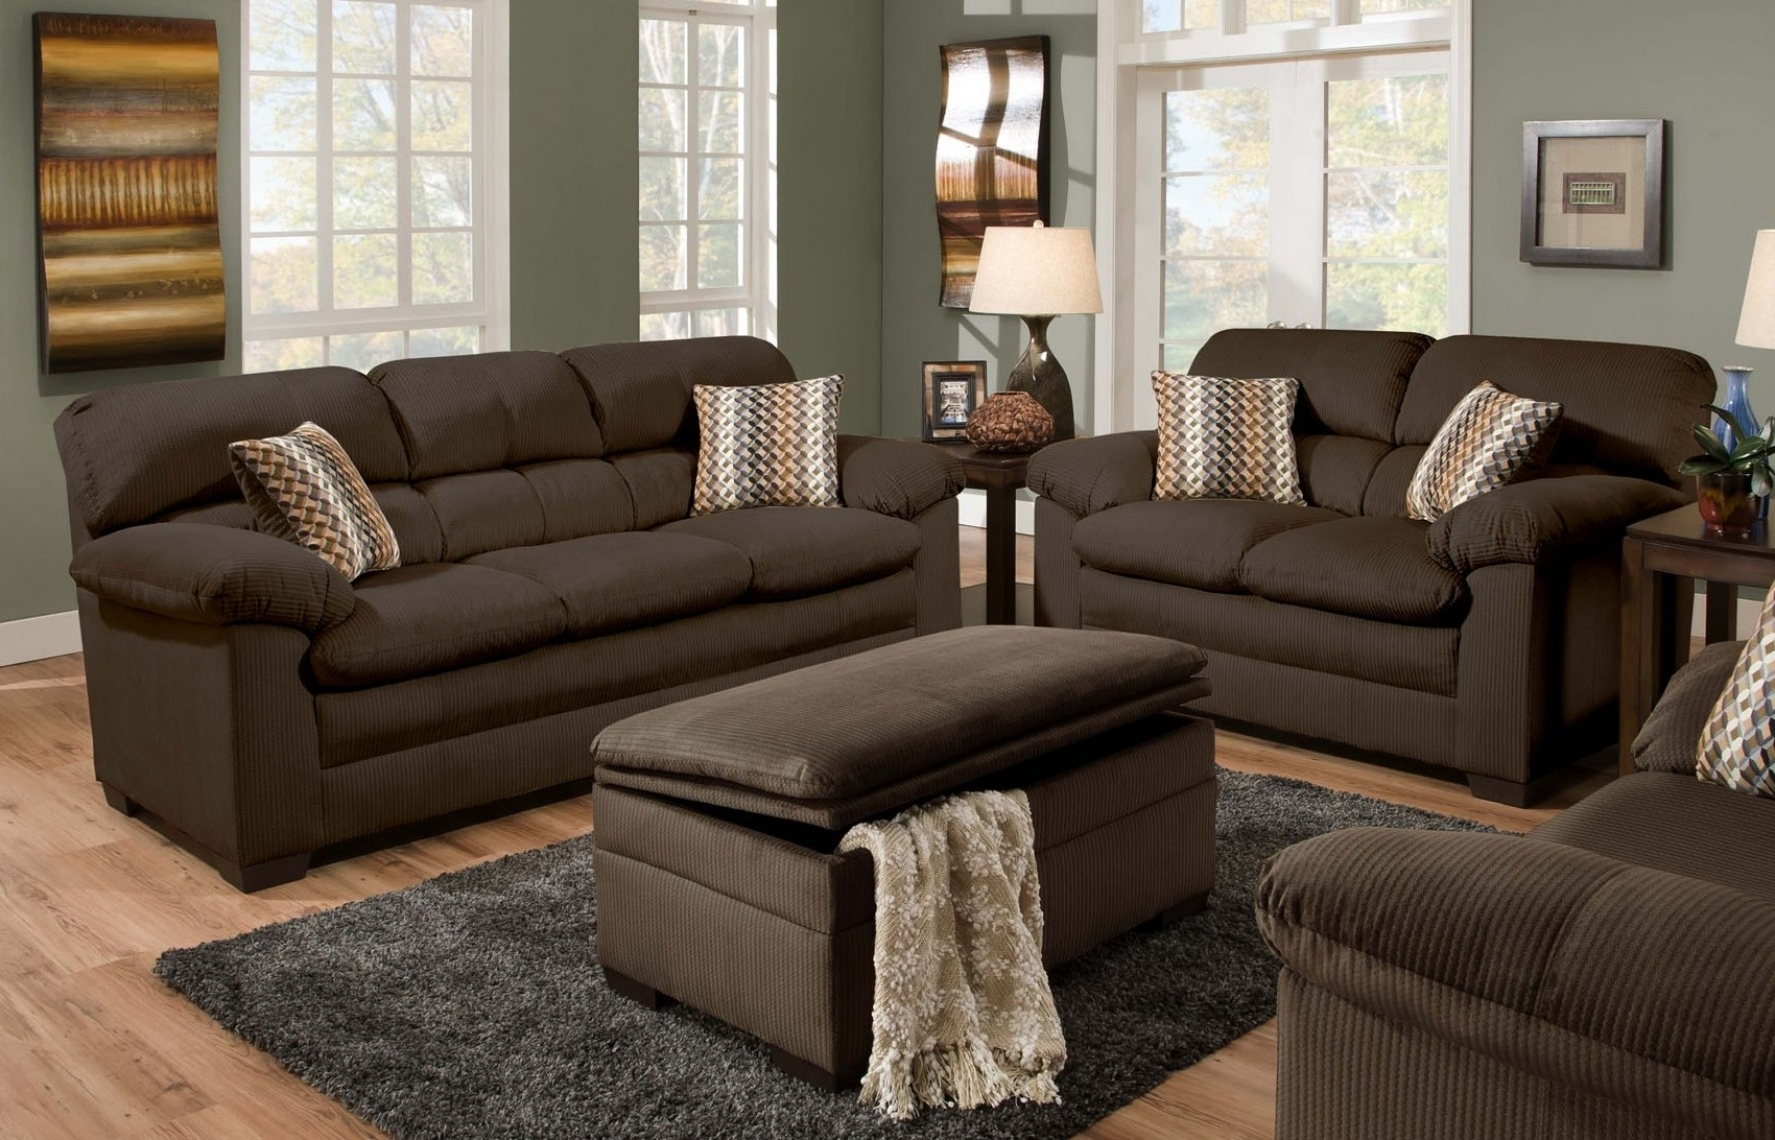 Famous Cappuccino Sectional Sofa Set Having Pillow Arms Details Also For Sofas With Ottoman (View 8 of 20)